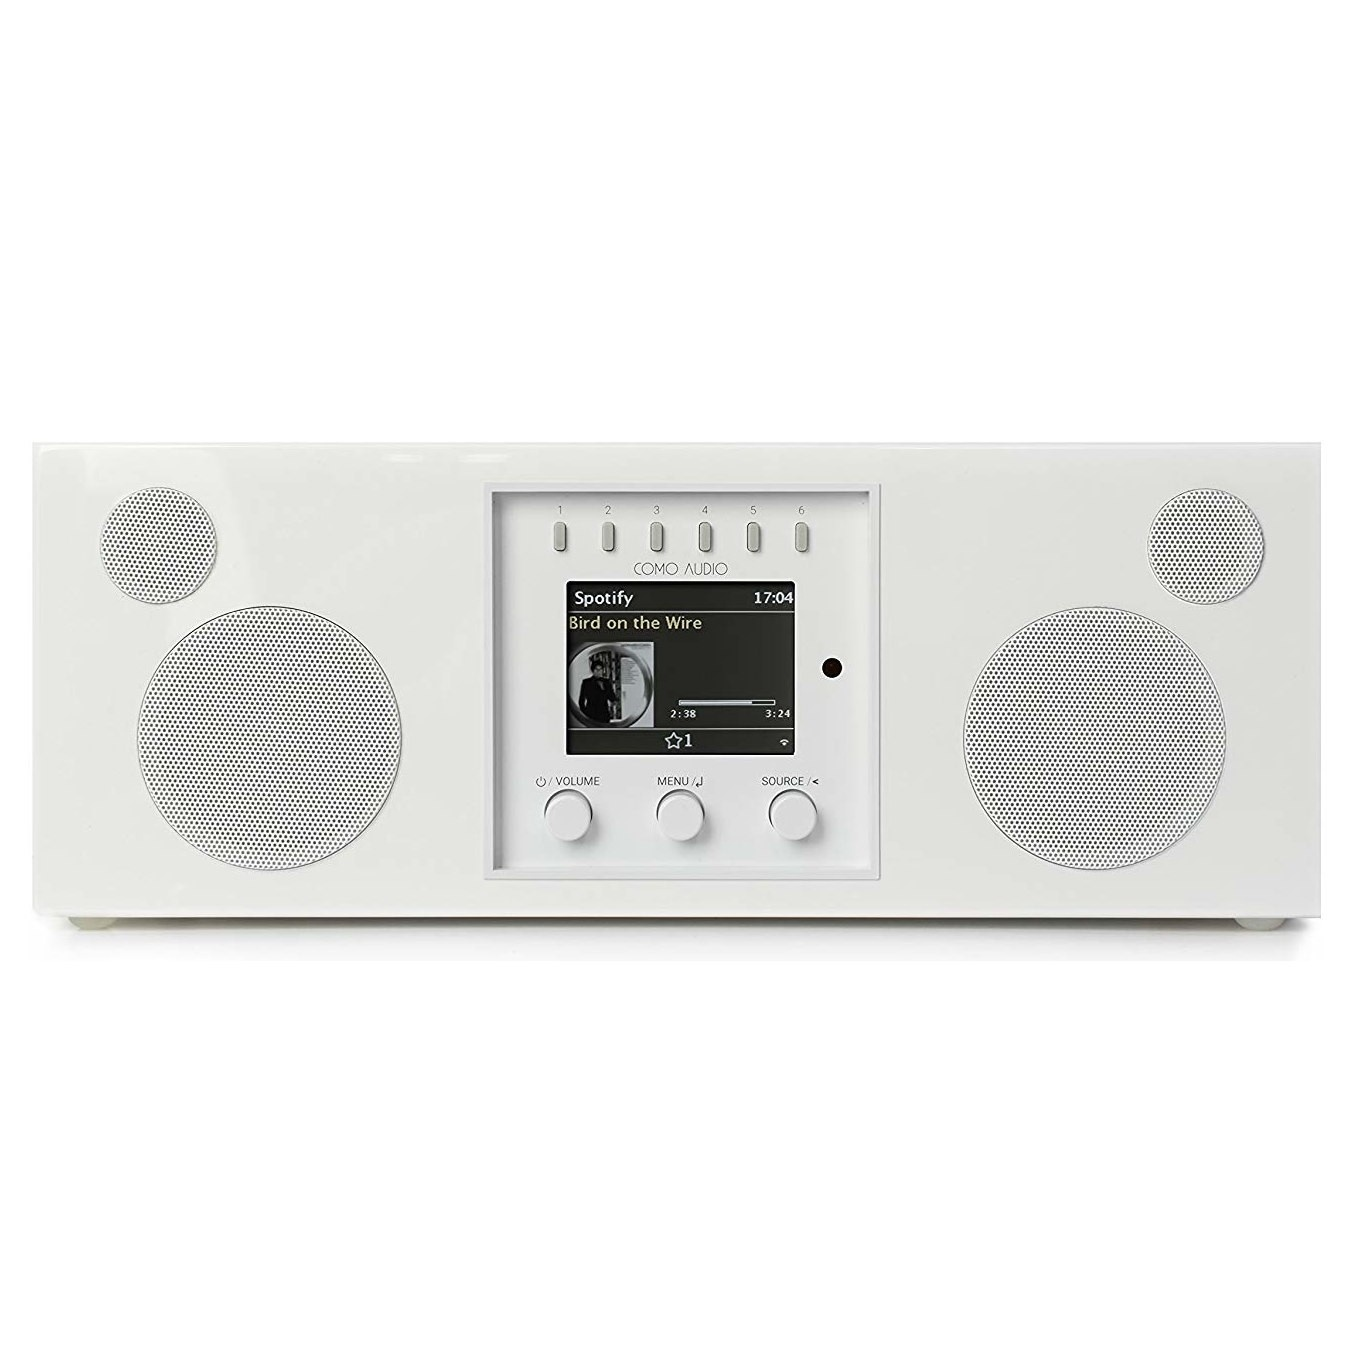 Como Audio Duetto DAB + / FM-radio met internetradio - Wit